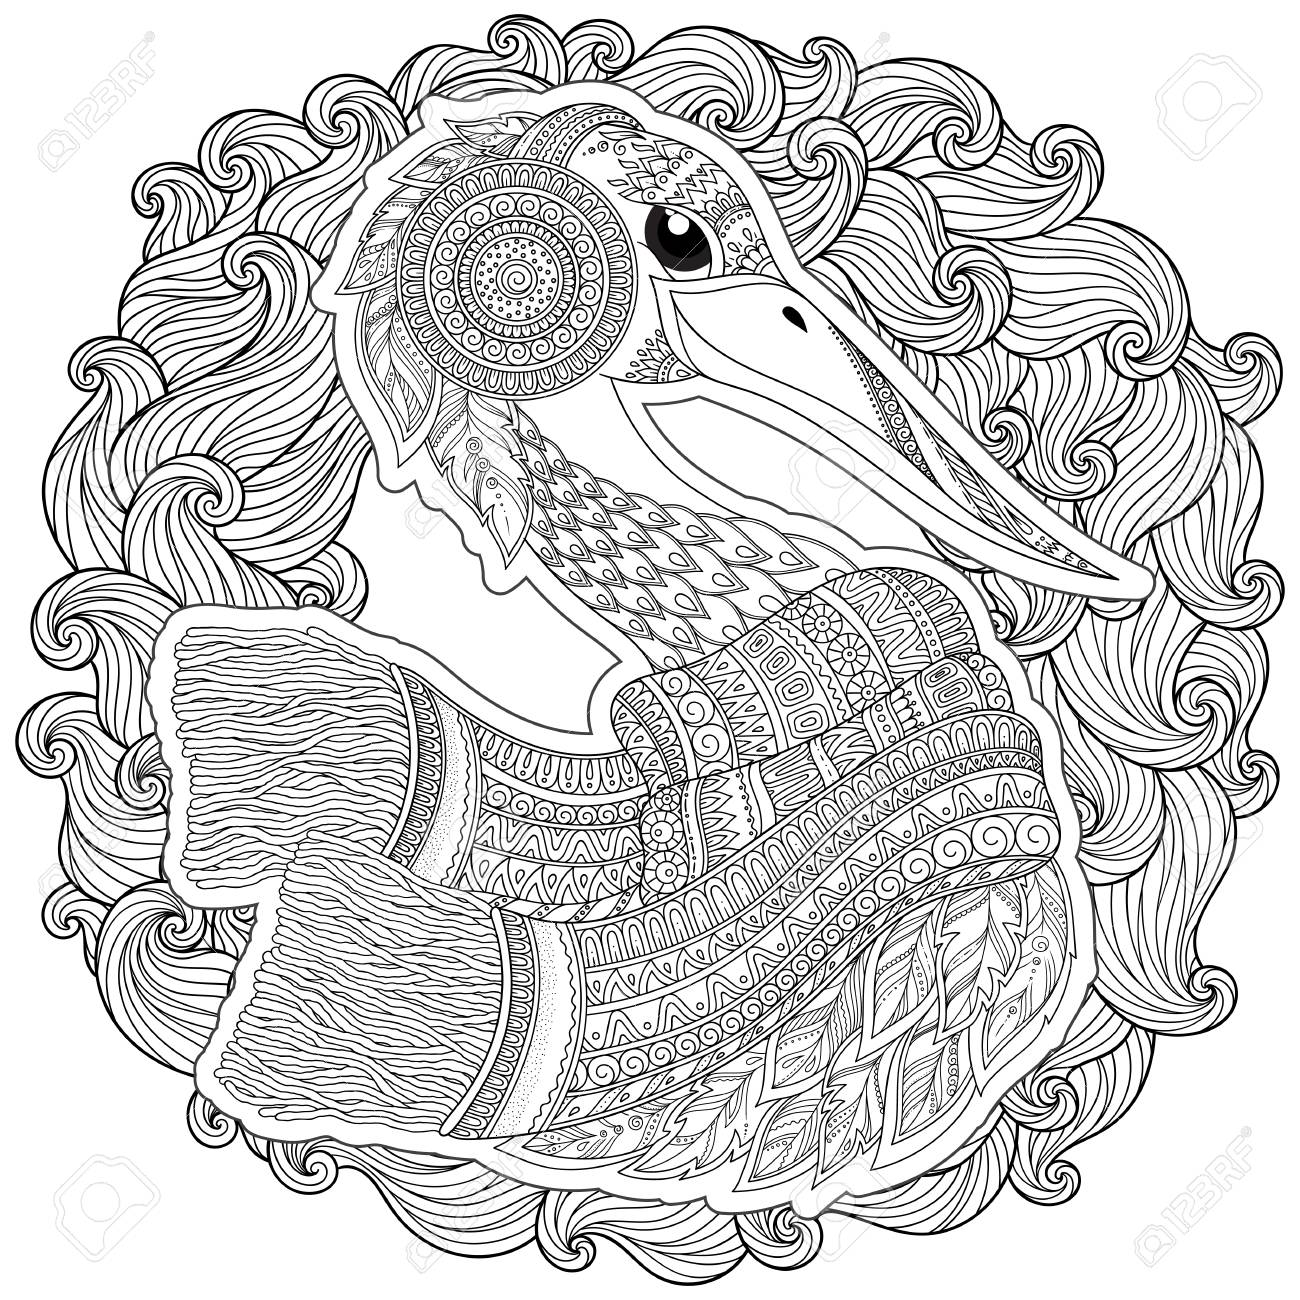 1300x1300 Hand Drawn Stork For Adult Anti Stress Coloring Pages, Post Card